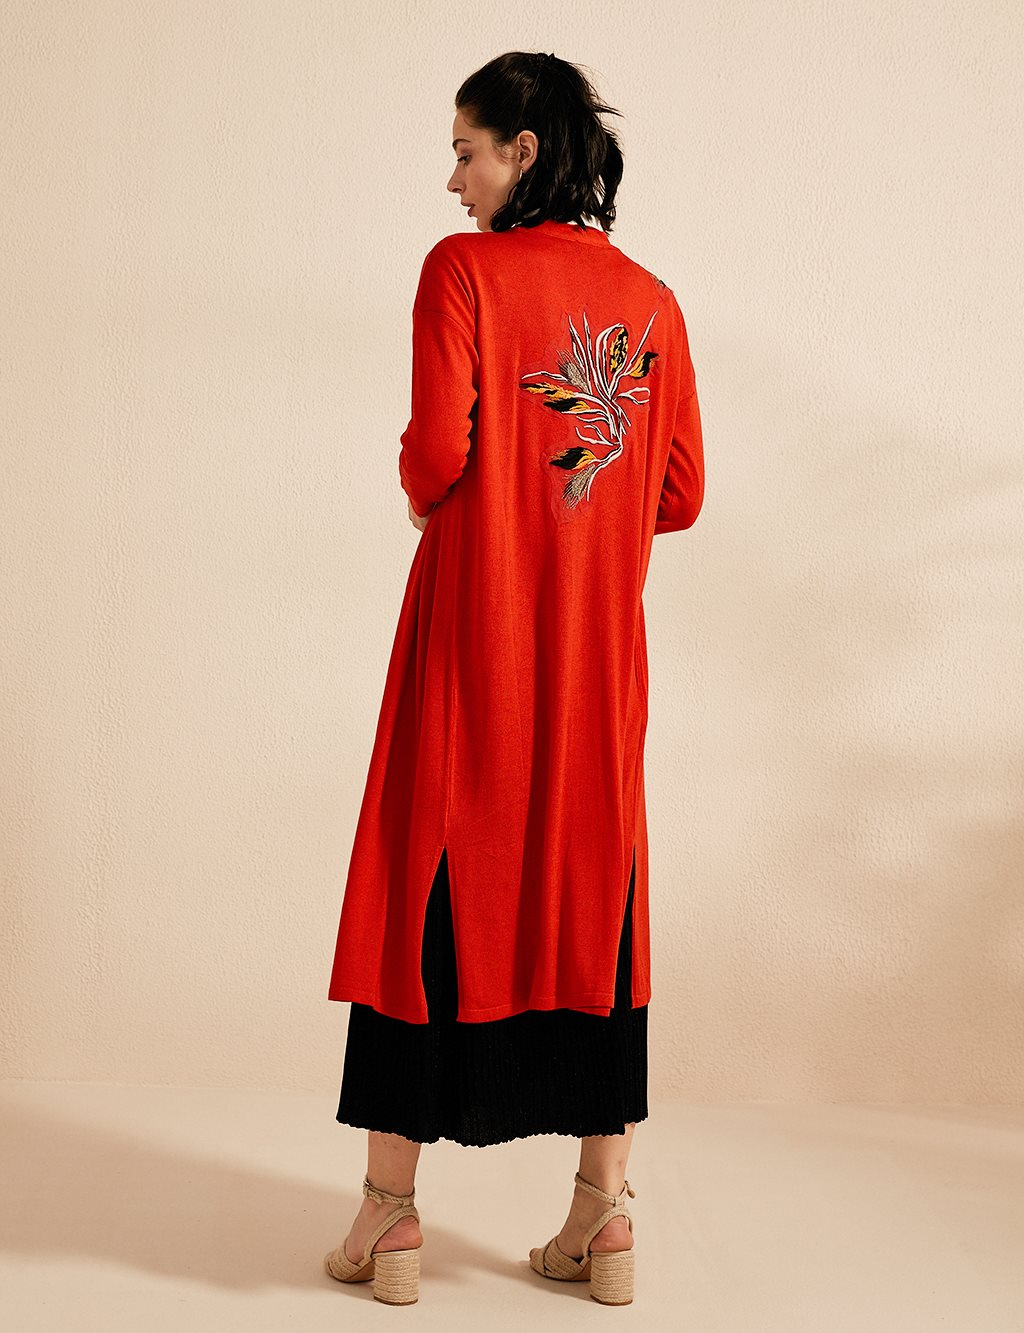 Embroidered Knitwear Cardigan B20 TRK01 Red